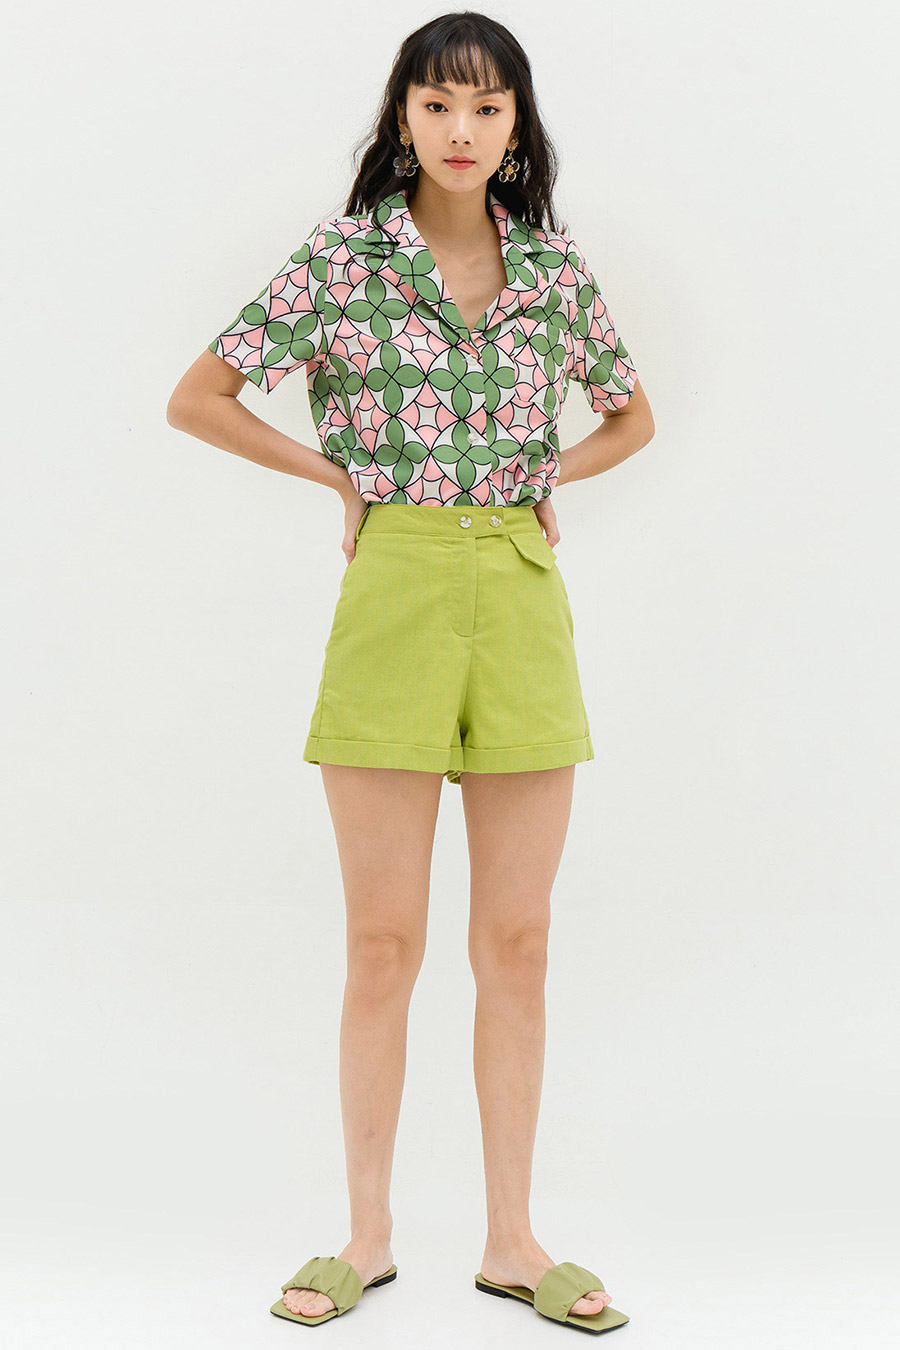 *RESTOCKED* FULTON SHORTS - PARK GREEN [BY MODPARADE]